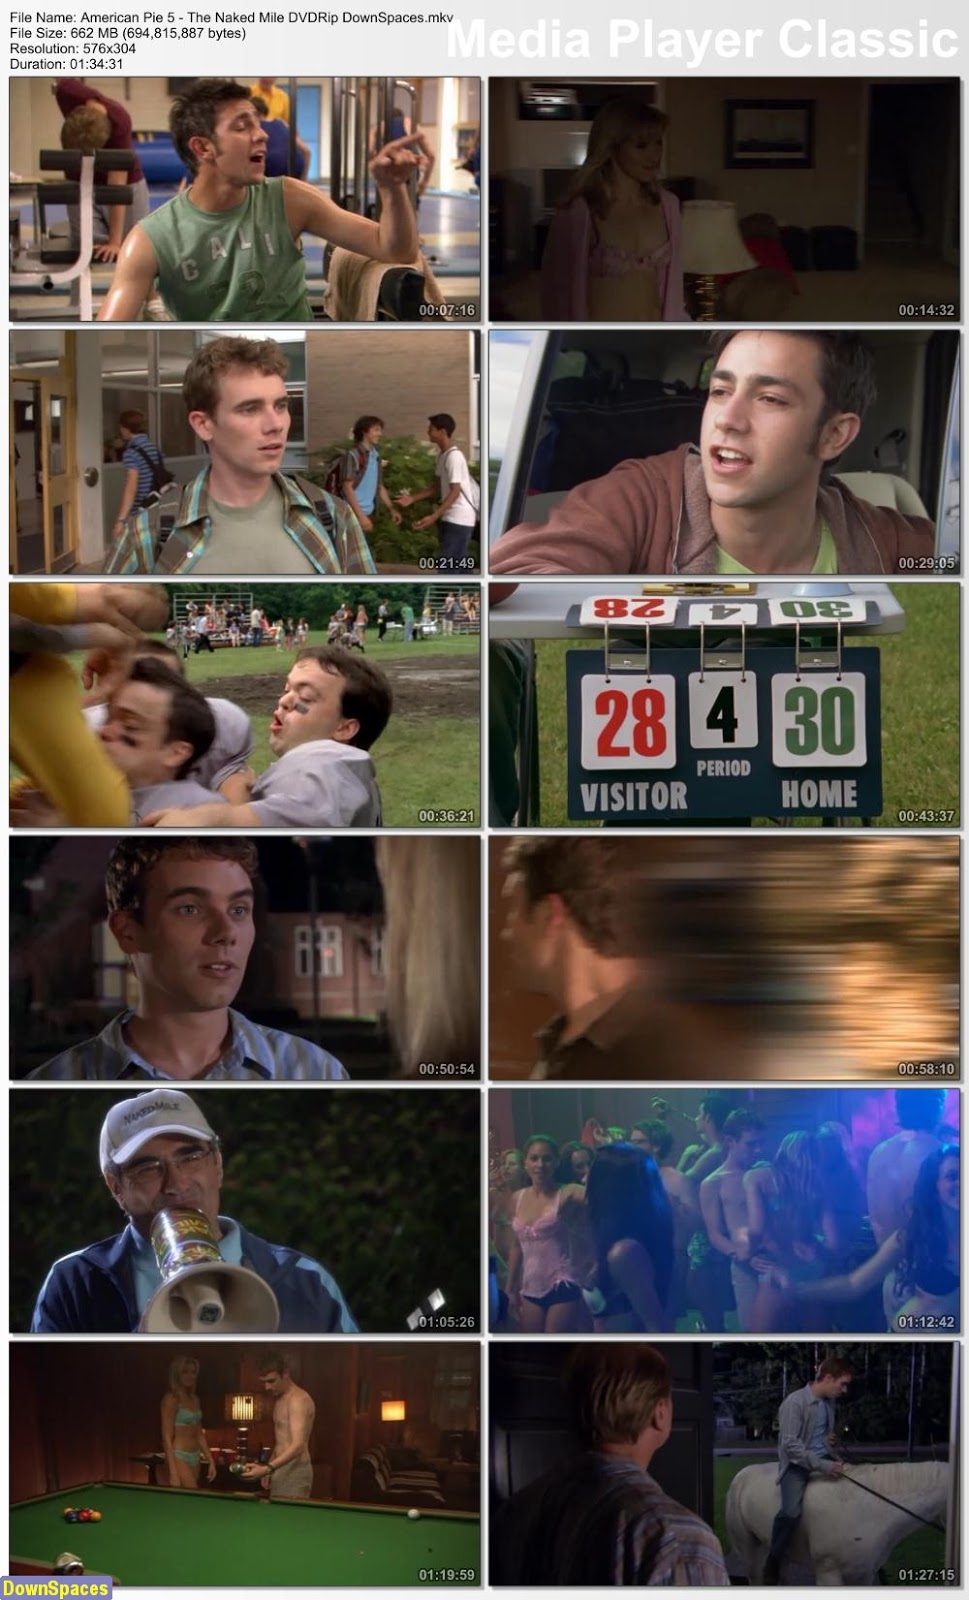 American Pie the naked mile 2006 dvdrip